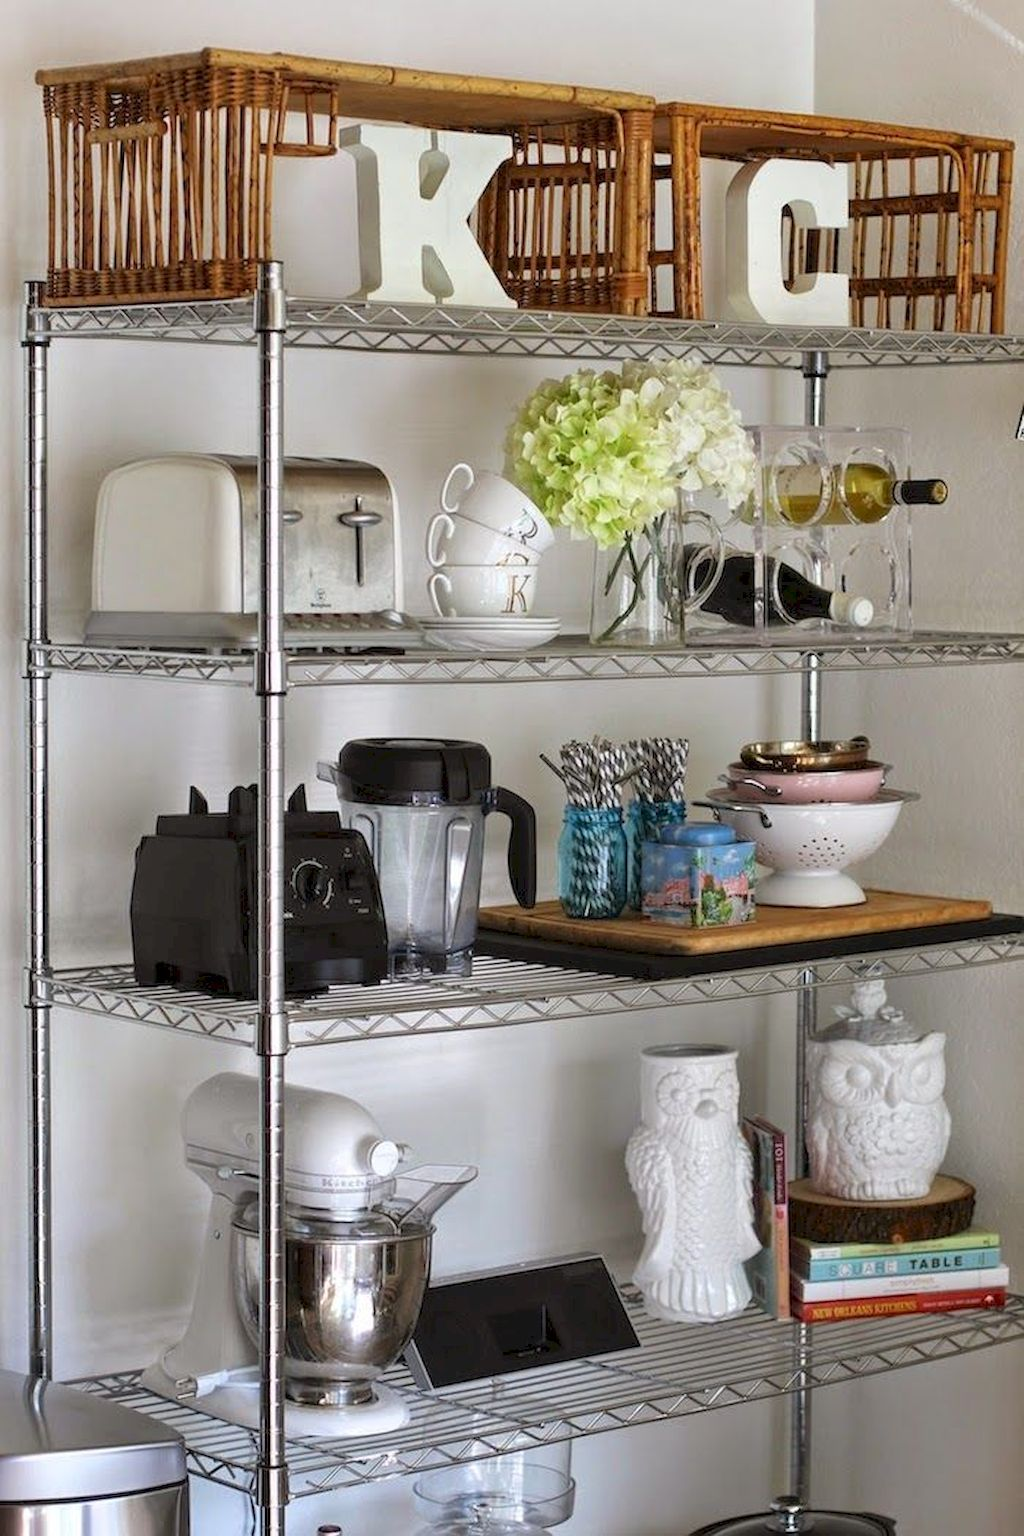 80 rustic kitchen decor with open shelves ideas rustic kitchen decor wire shelving kitchen home on kitchen decor open shelves id=41174